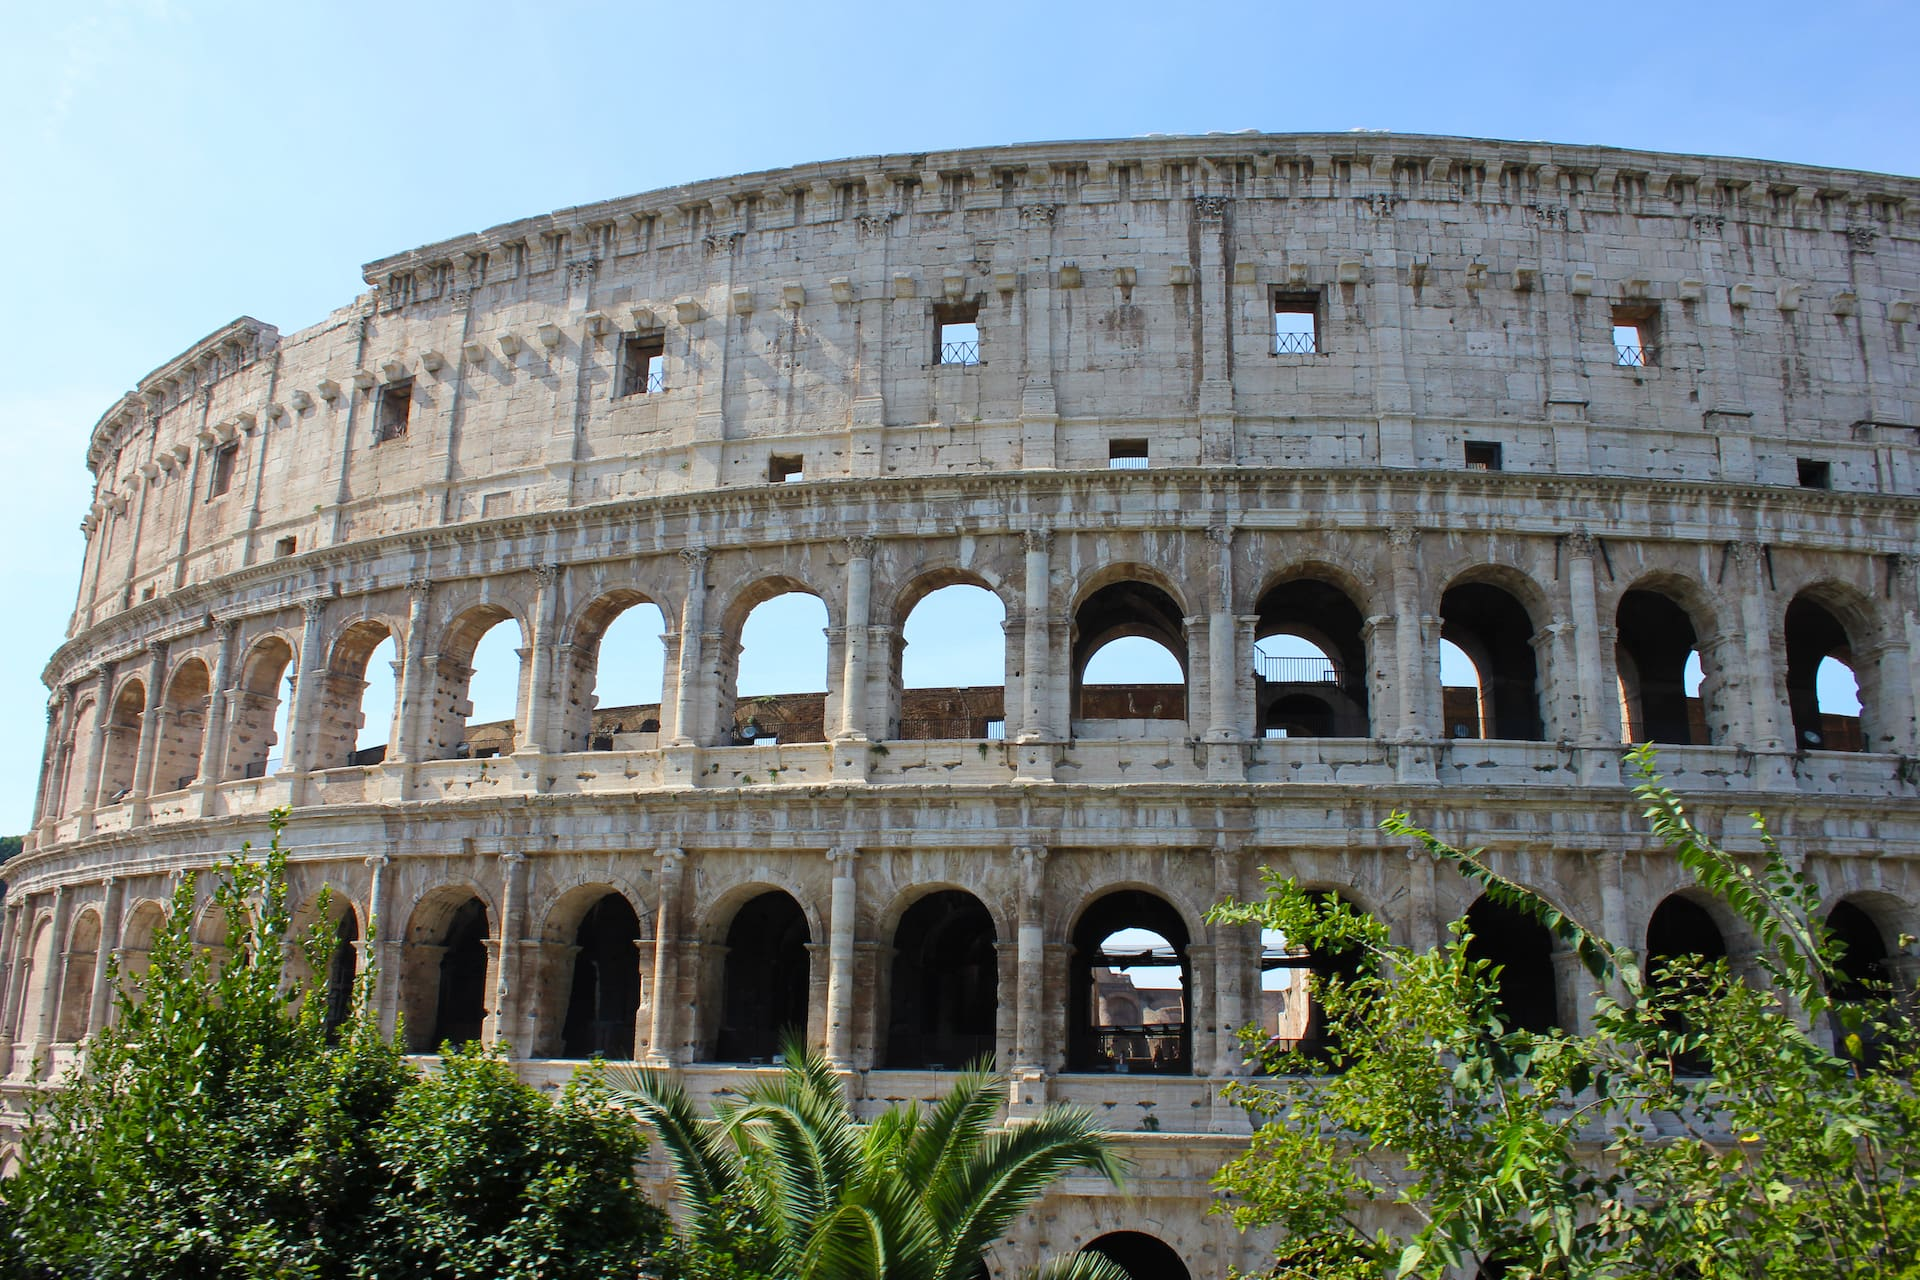 Things to do Colosseum